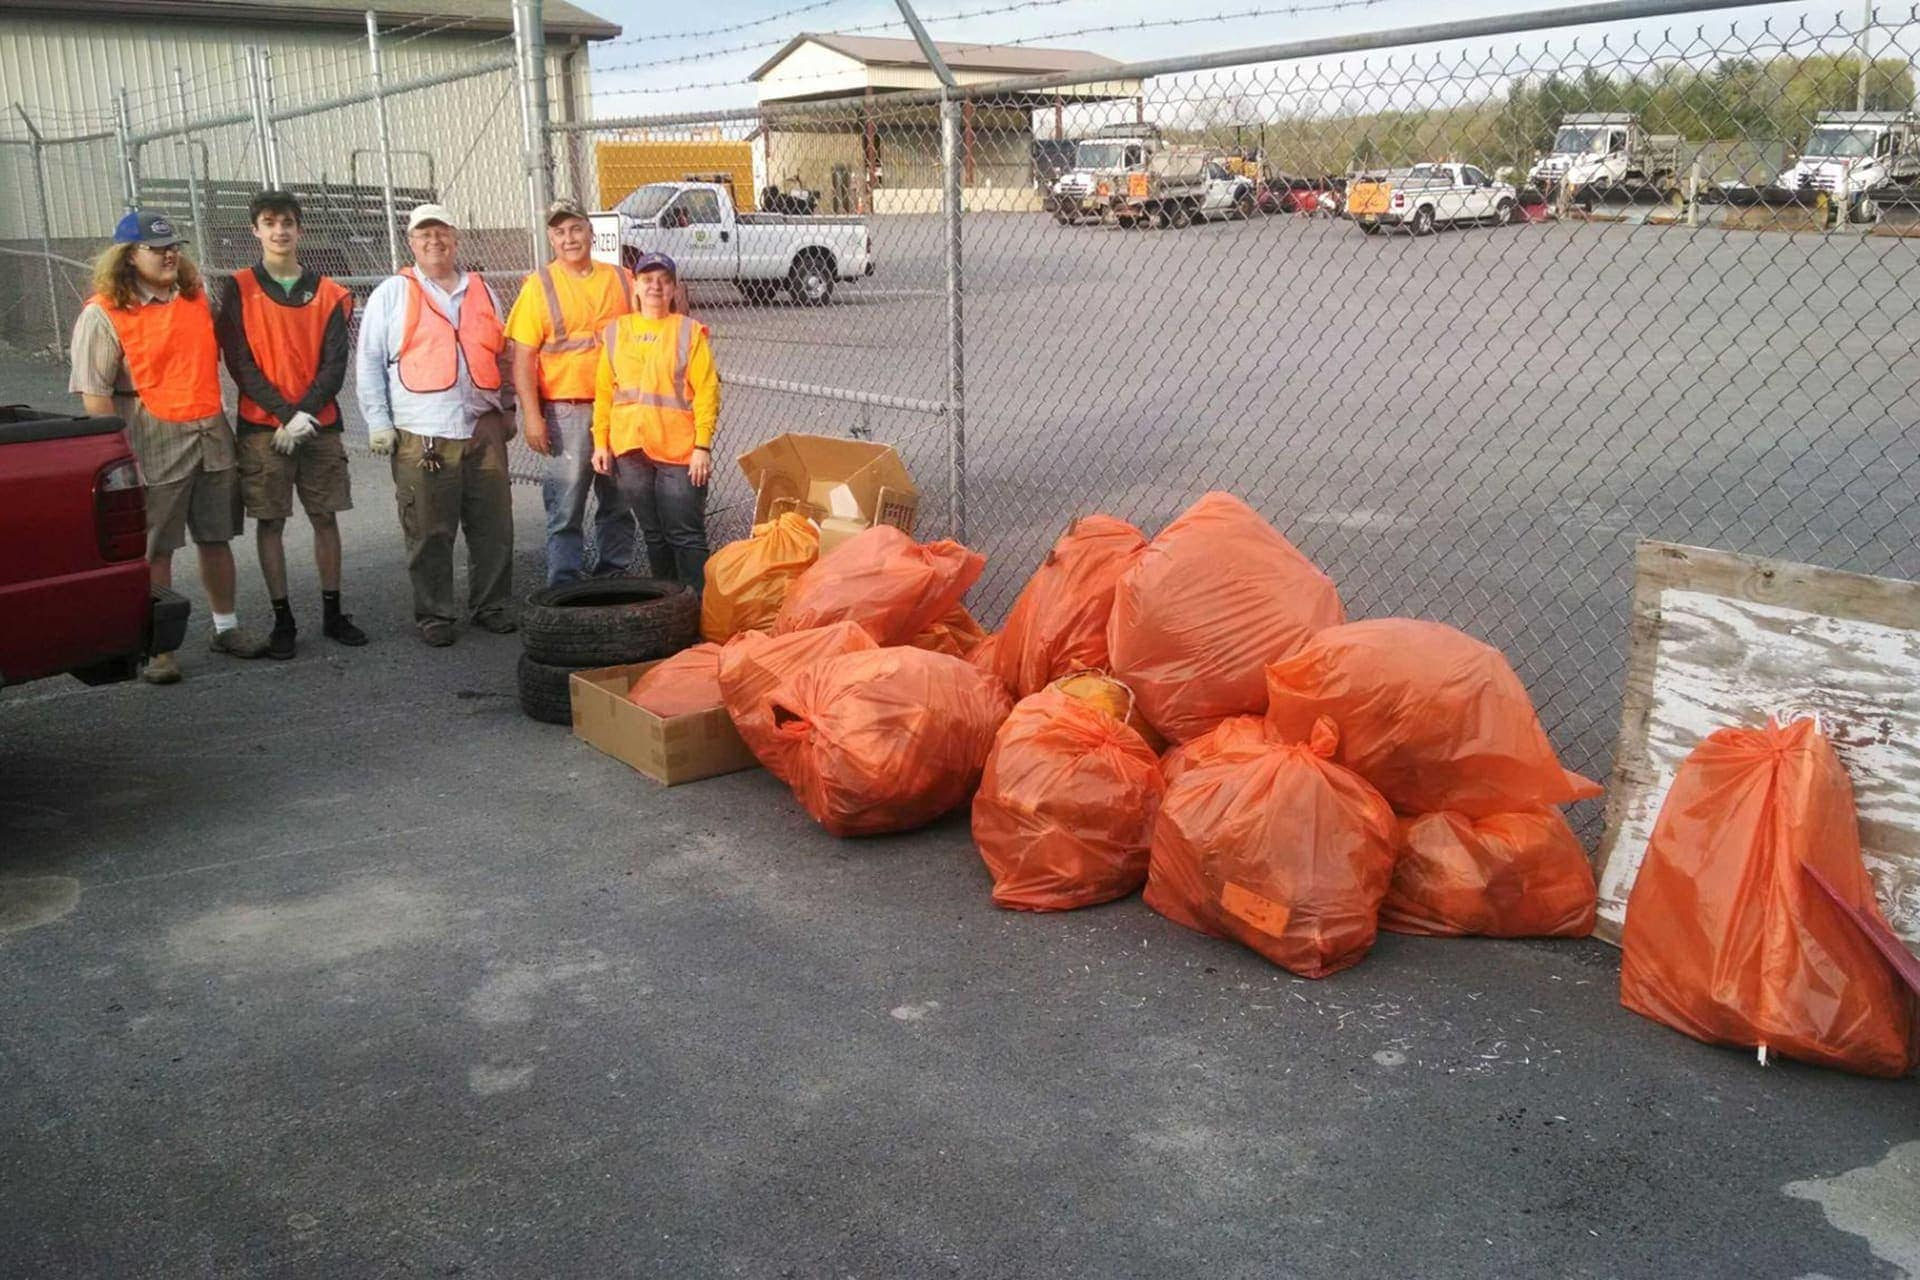 WVDEP and volunteer groups removed more than 590,000 pounds of litter during spring cleanups